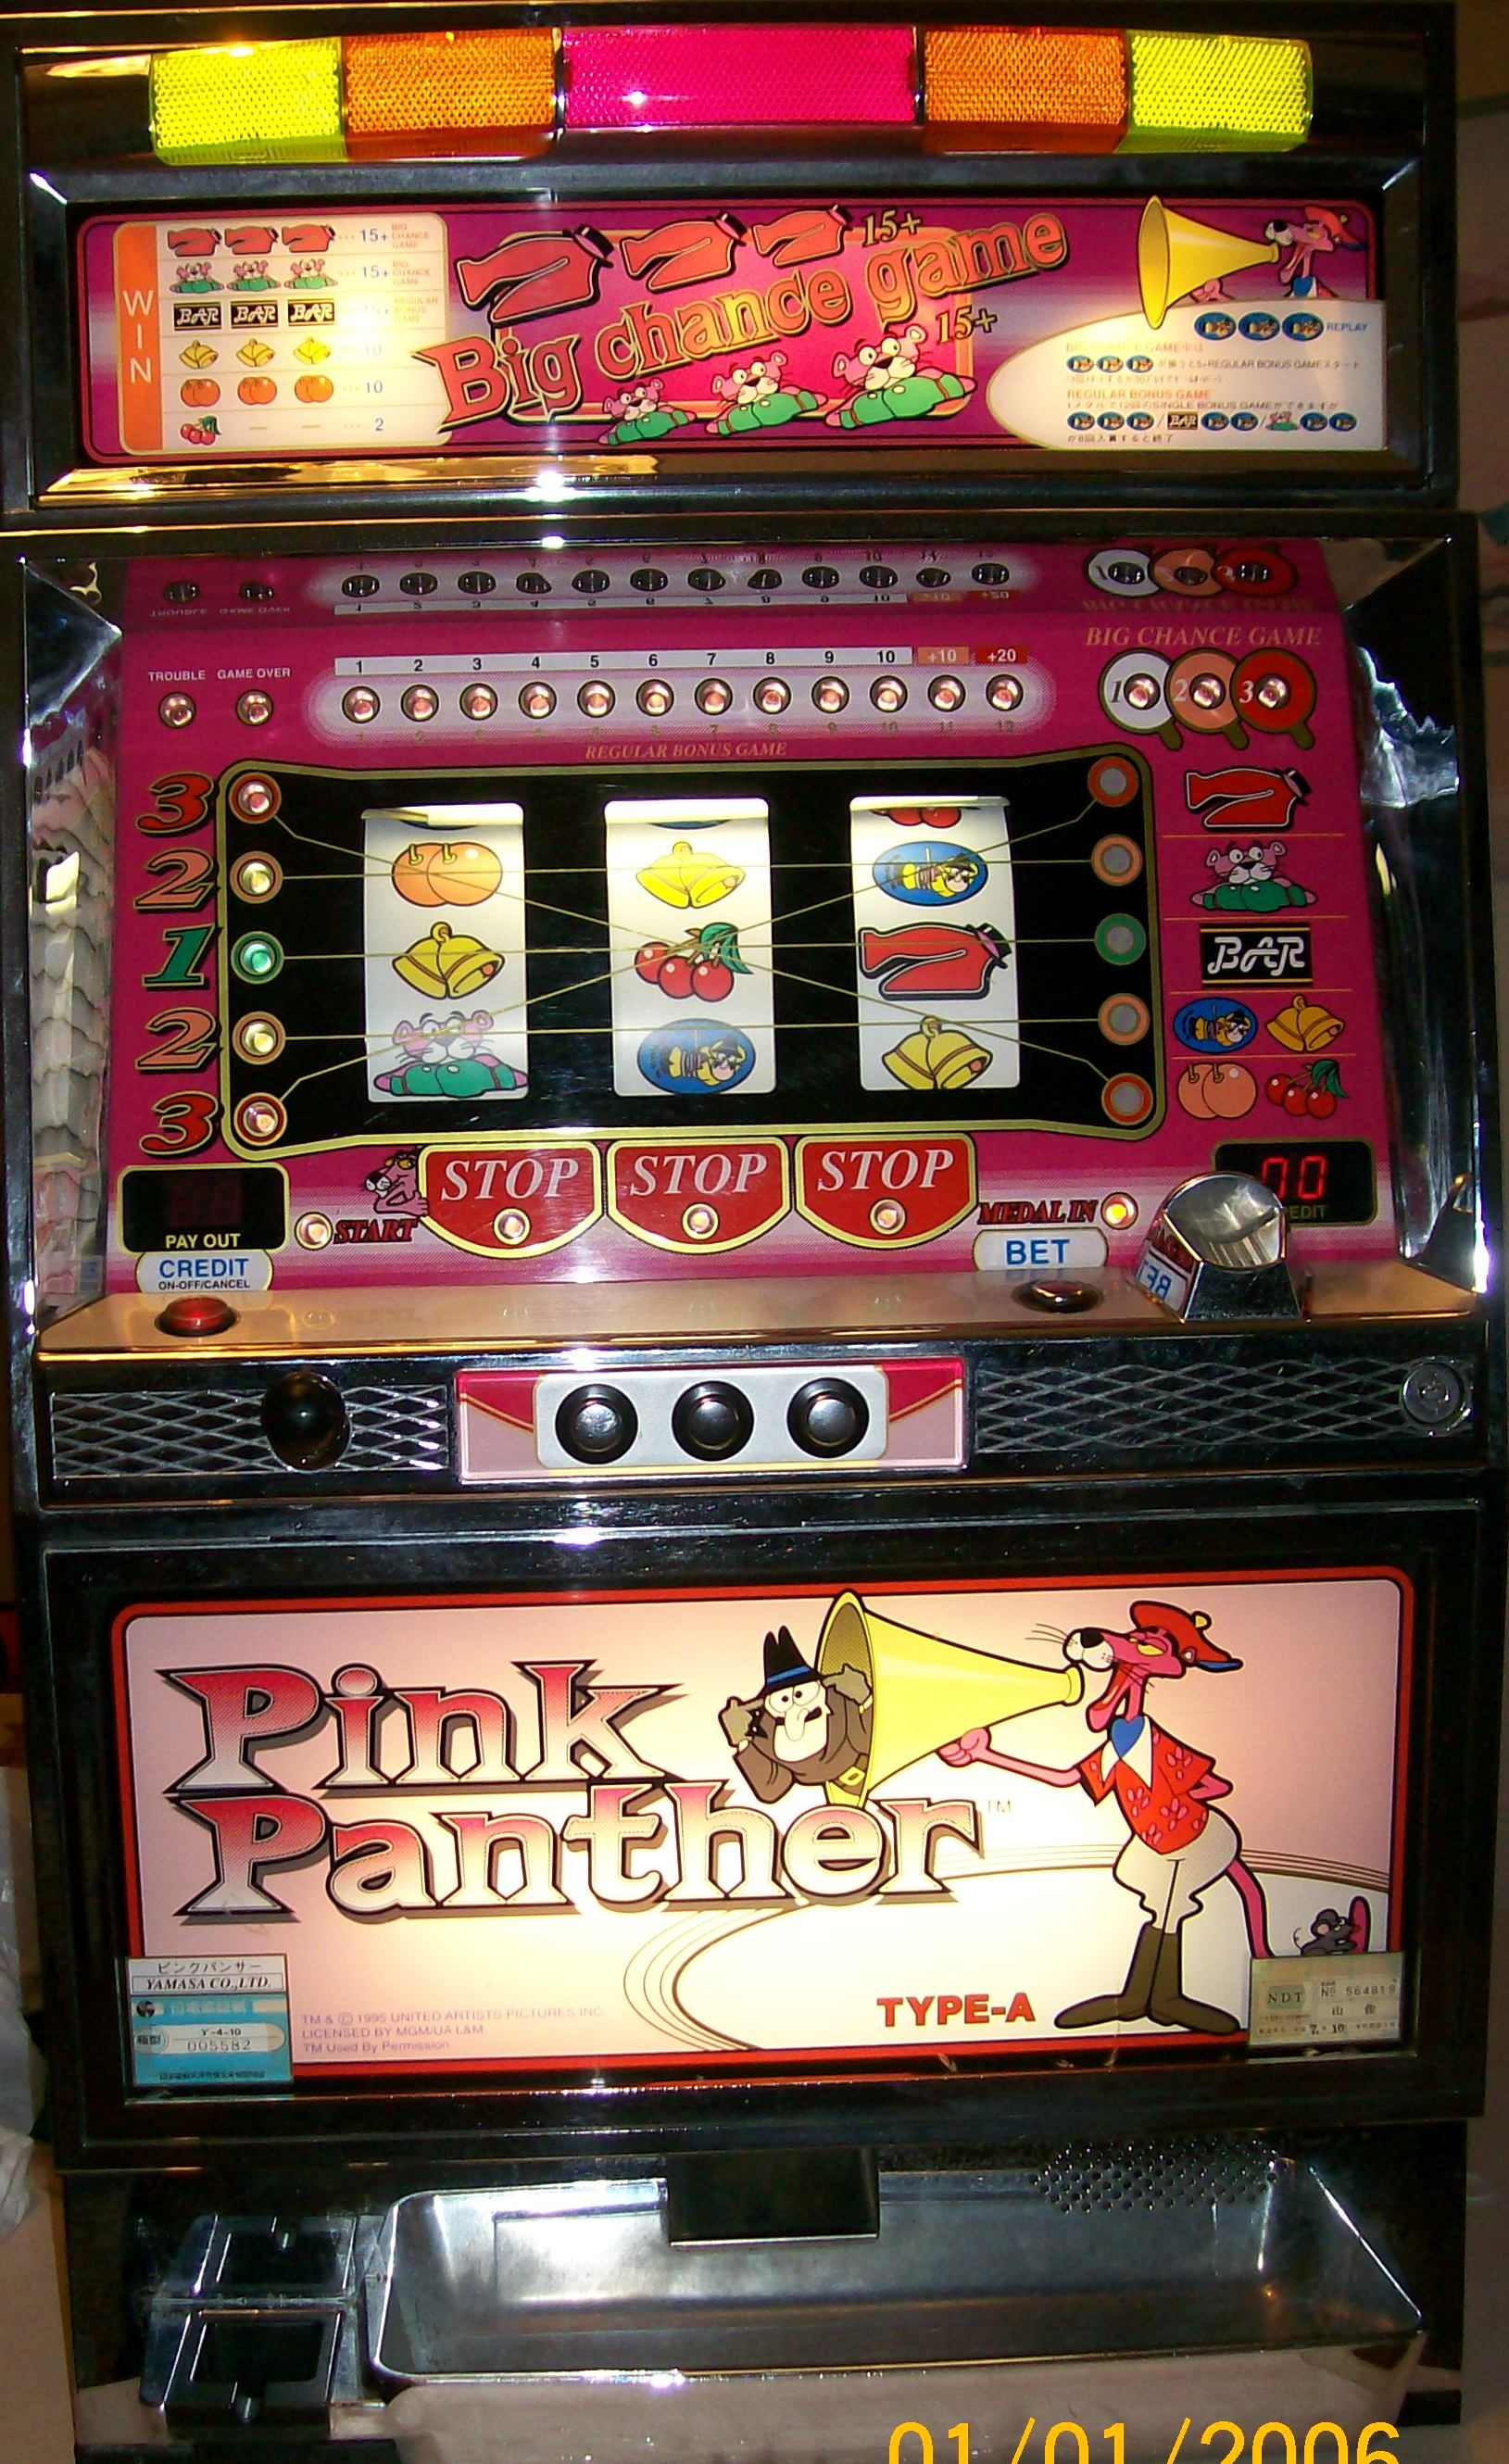 Pink panther slot machines hollywood casino penn national restaurants